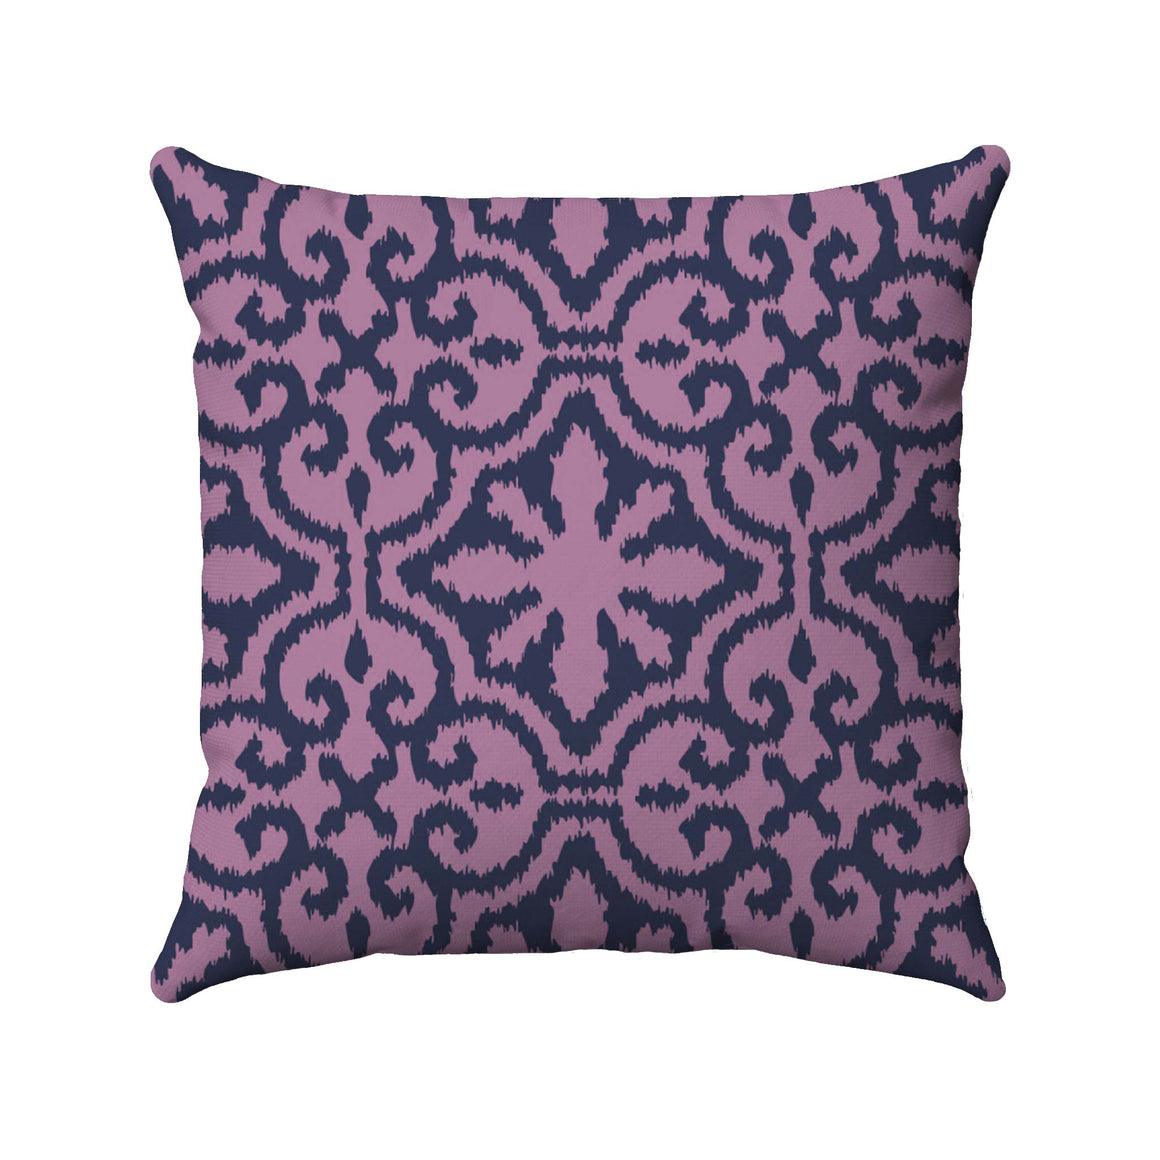 Lavendar damask ikat design on an ultra violet background